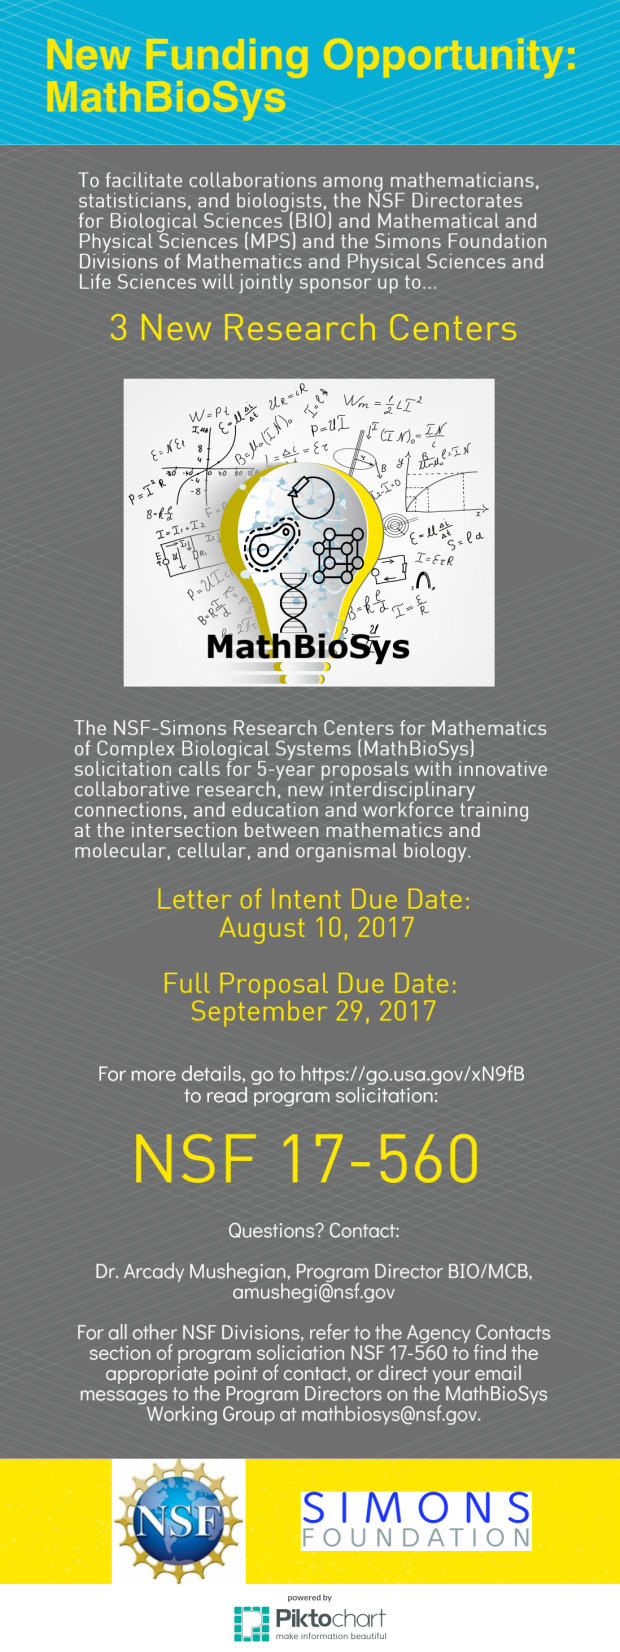 "The infographic shows a new funding opportunity. The title in yellow with a blue background at the top says New Funding Opportunity: MathBioSys. The rest of the image is grey with white angled lines and white or yellow text. A drawing of a light bulb on top of math layered with biological drawings and the words MathBioSys is the middle of the image. The text reads, ""To faciliate collaborations among mathematicians, statisticians, and biologists, the NSF Directorates for Biological Sciences (BIO) and Mathematical and Physical Sciences (MPS) and the Simons Foundation Divisions of Mathematics and Physical Sciences and Life Sciences will jointly sponsor up to... 3 New Research Centers. The NSF-Simons Research Centers for Mathematics of Complex Biological Systems (MathBioSys) soliciation calls for 5-year proposals with innovative collaborative research new interdisciplinary connections, and education and workforce training at the intersection between mathematics and molecular, cellular, and organismal biology. Letter of Intent Due Date: August 10, 2017. Full Proposal Due Date: September 29, 2017. For more details, go to https://go.usa.gov/xN9f to read program soliciation: NSF 17-560. Questions? Contact: Dr. Arcady Mushegian, Program Director BIO/MCB, amushi@nsf.gov. For all other NSF Divisions, refer to the Agency Contacts section of program soliciation NSF 17-560 to find the appropriate point of contact, or direct your email messages to the Program Directors on the MathBioSys Working Group at mathbiosys@nsf.gov. The bottom of the image shows the NSF and Simons Foundation logos."